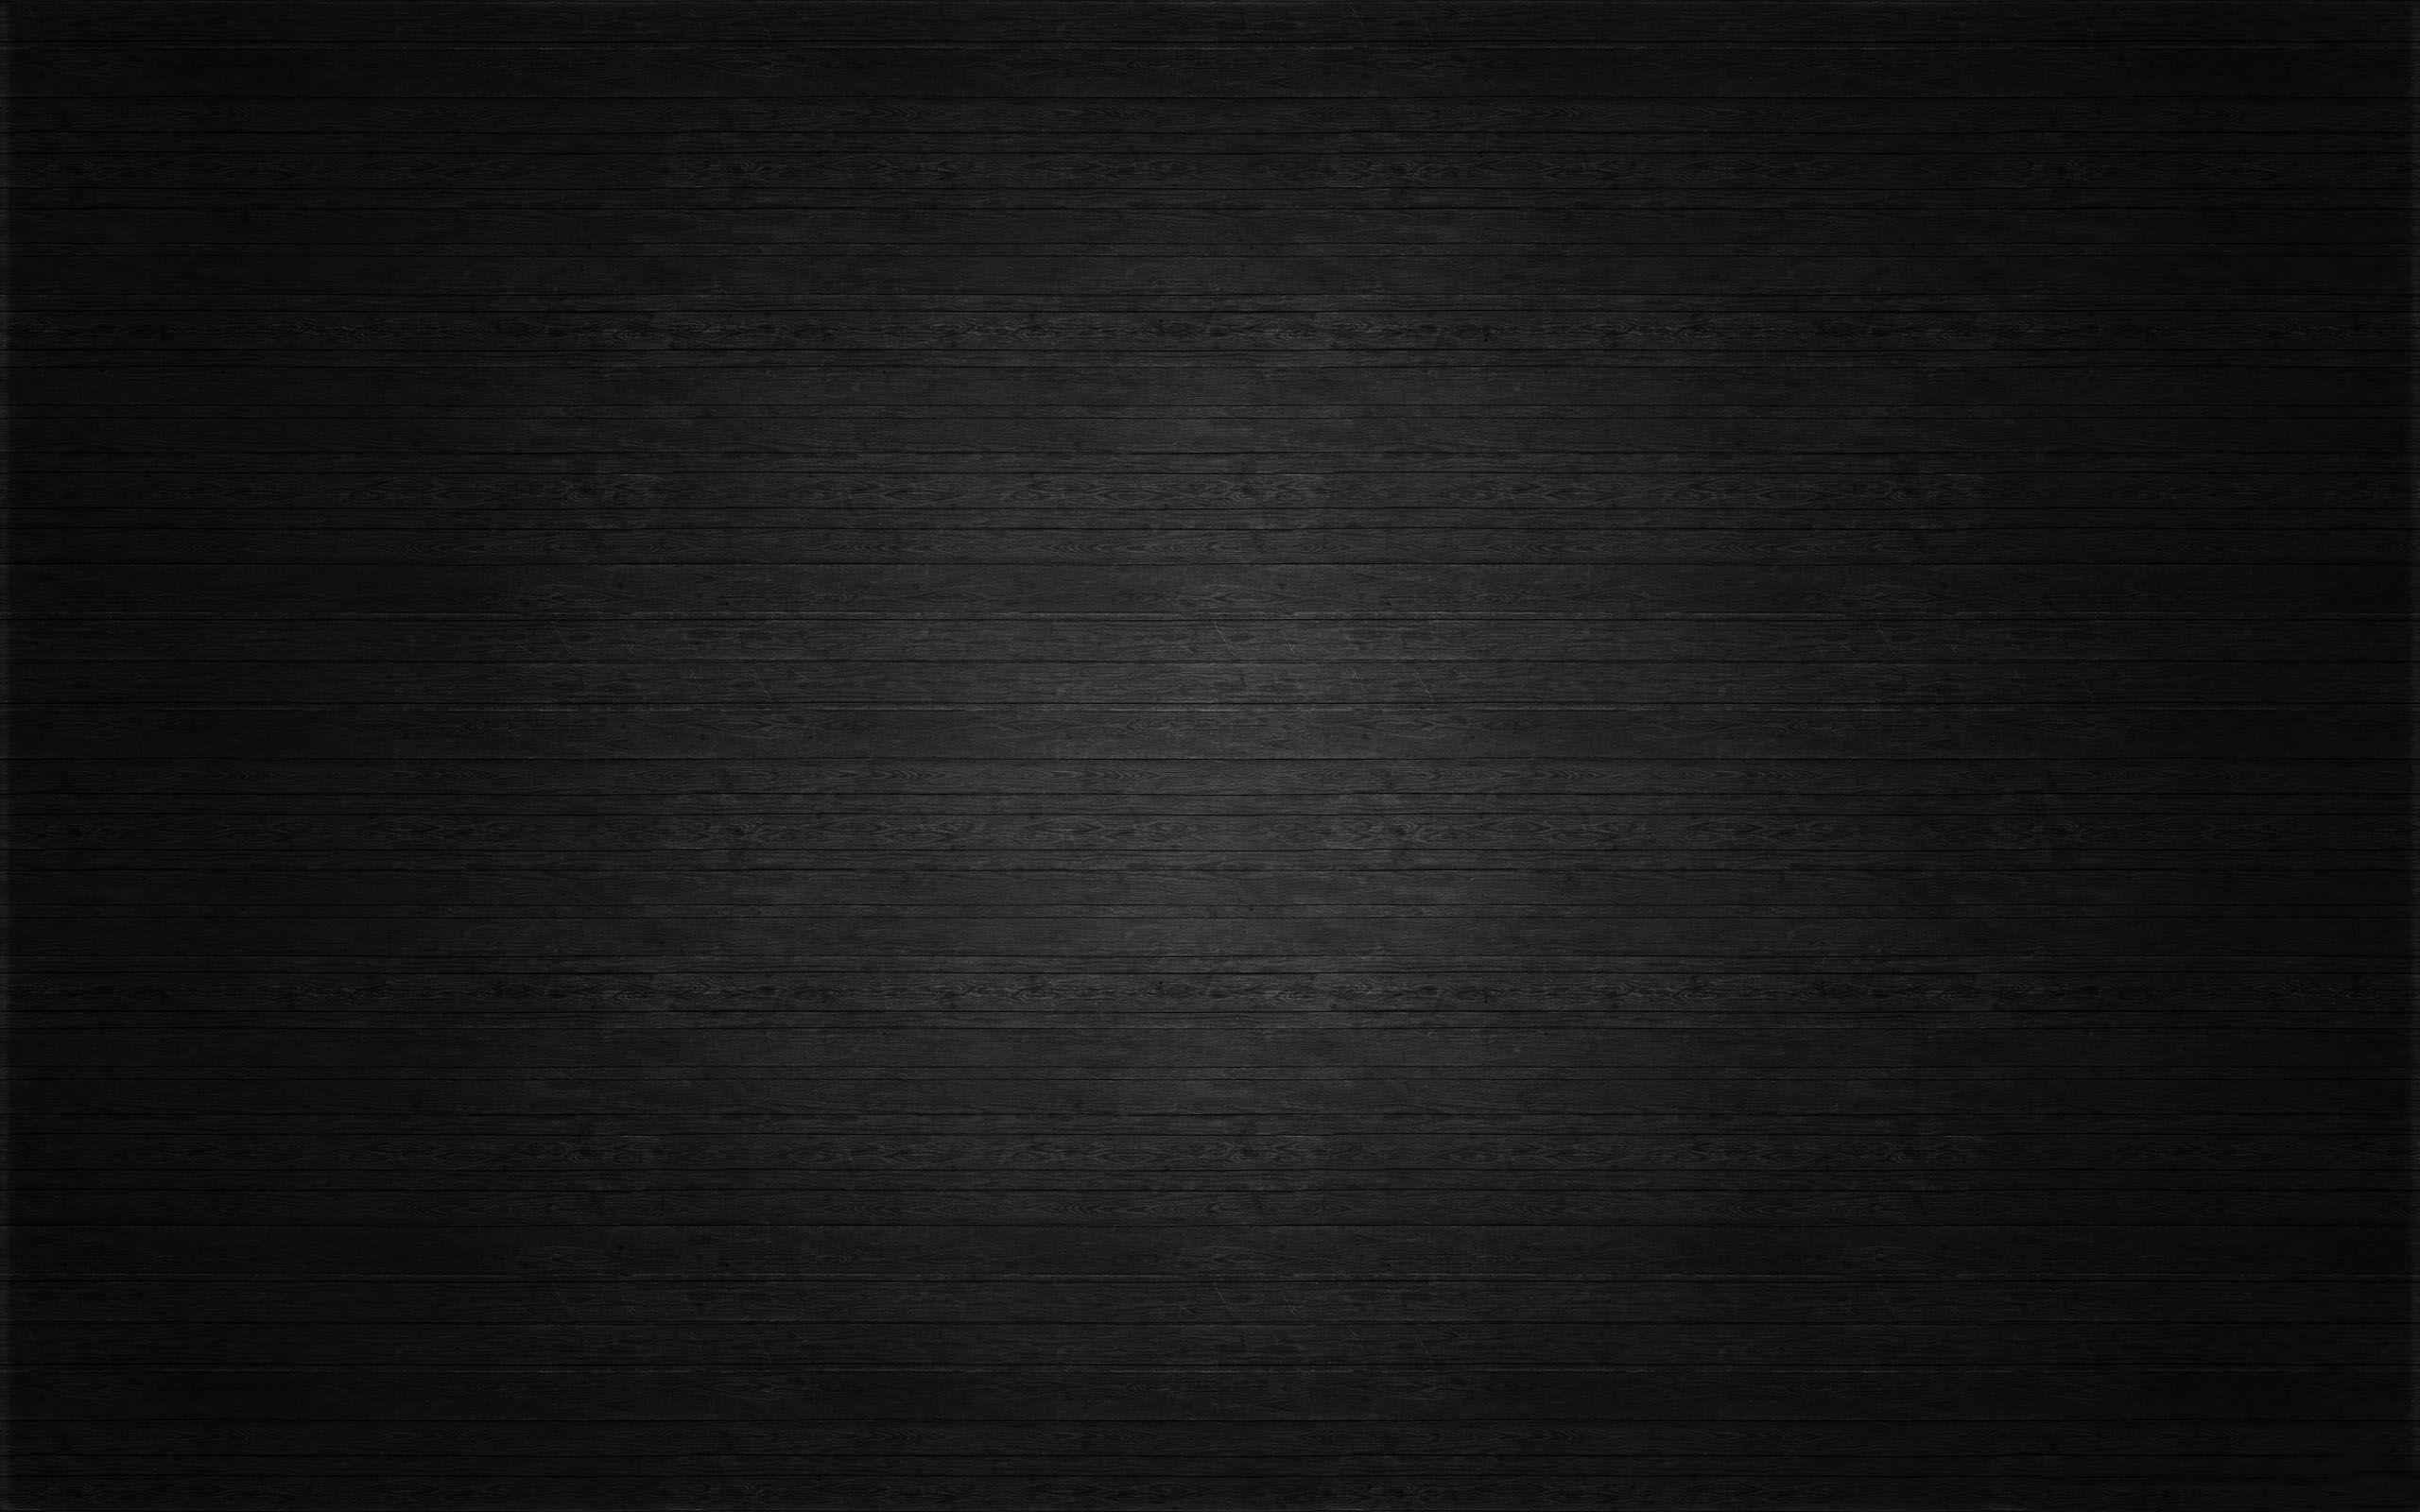 Cool black backgrounds designs wallpaper cave for Dark pattern background